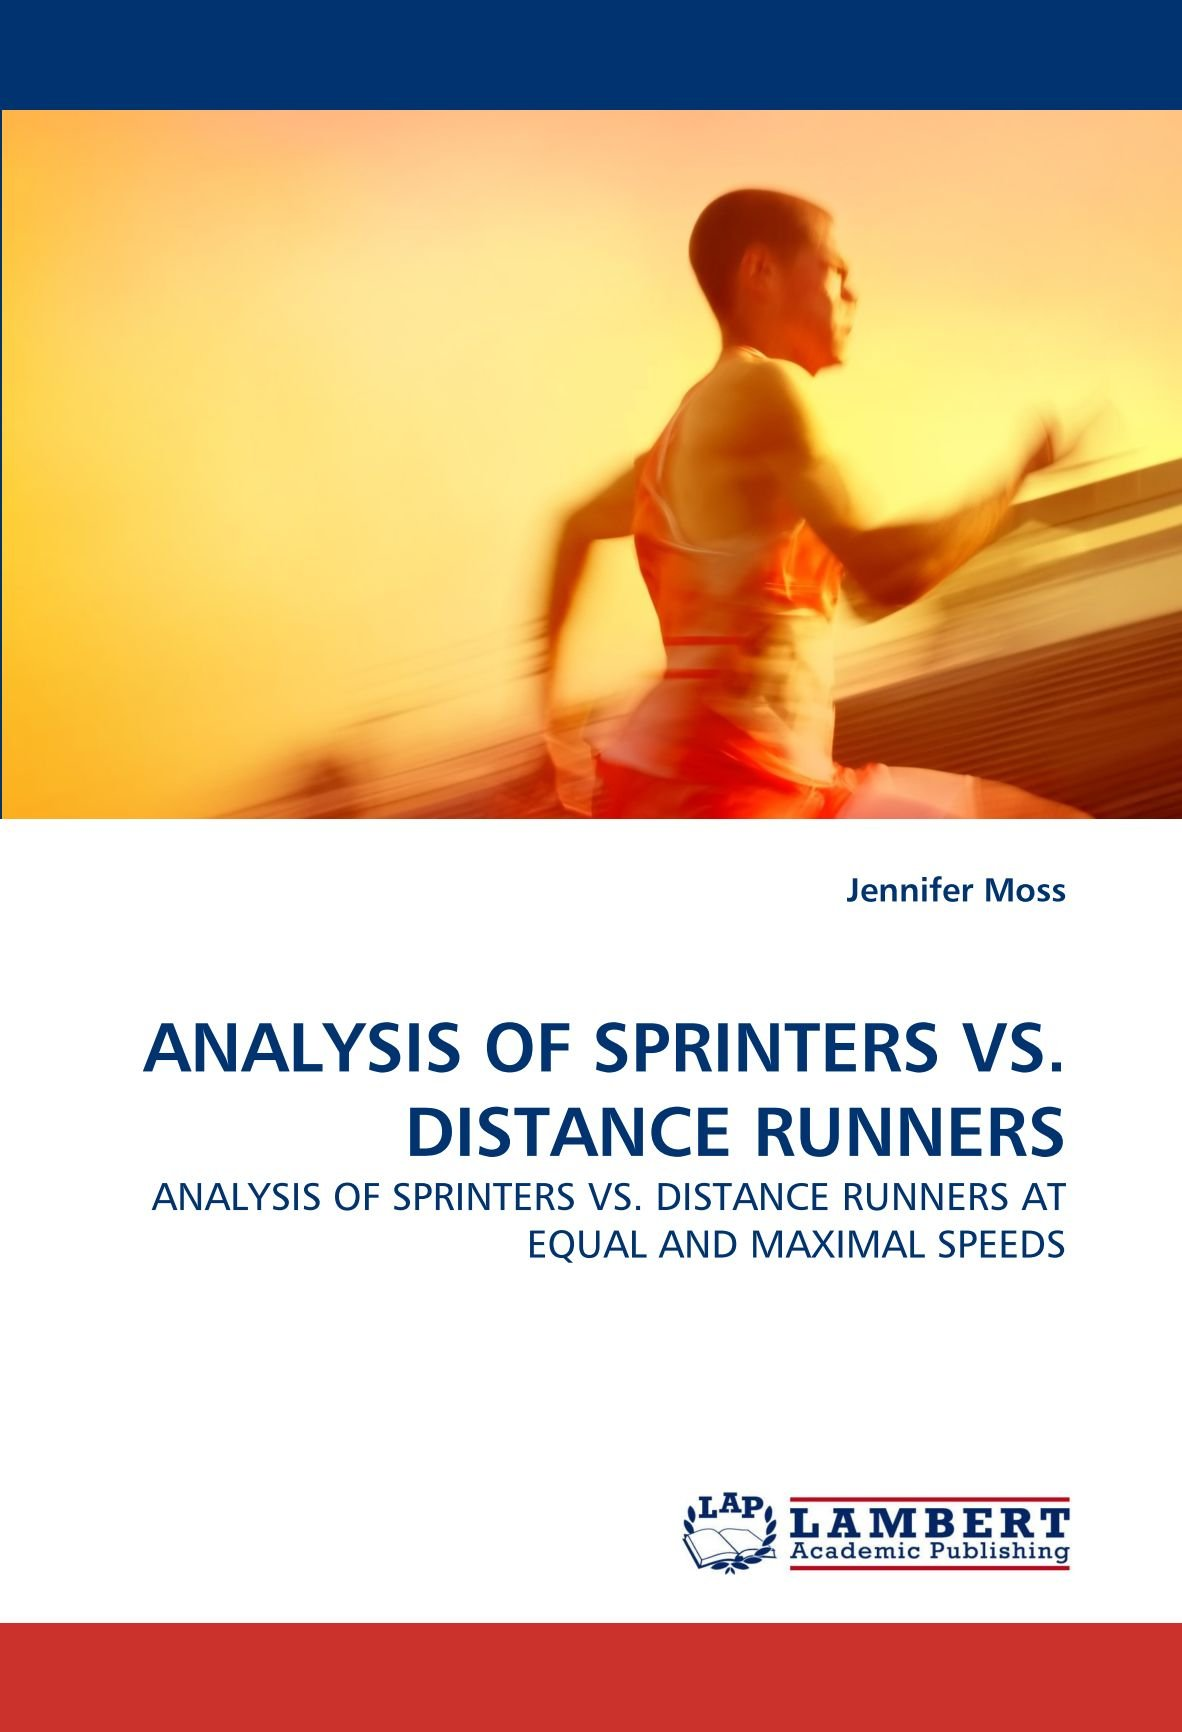 Download ANALYSIS OF SPRINTERS VS. DISTANCE RUNNERS: ANALYSIS OF SPRINTERS VS. DISTANCE RUNNERS AT EQUAL AND MAXIMAL SPEEDS pdf epub